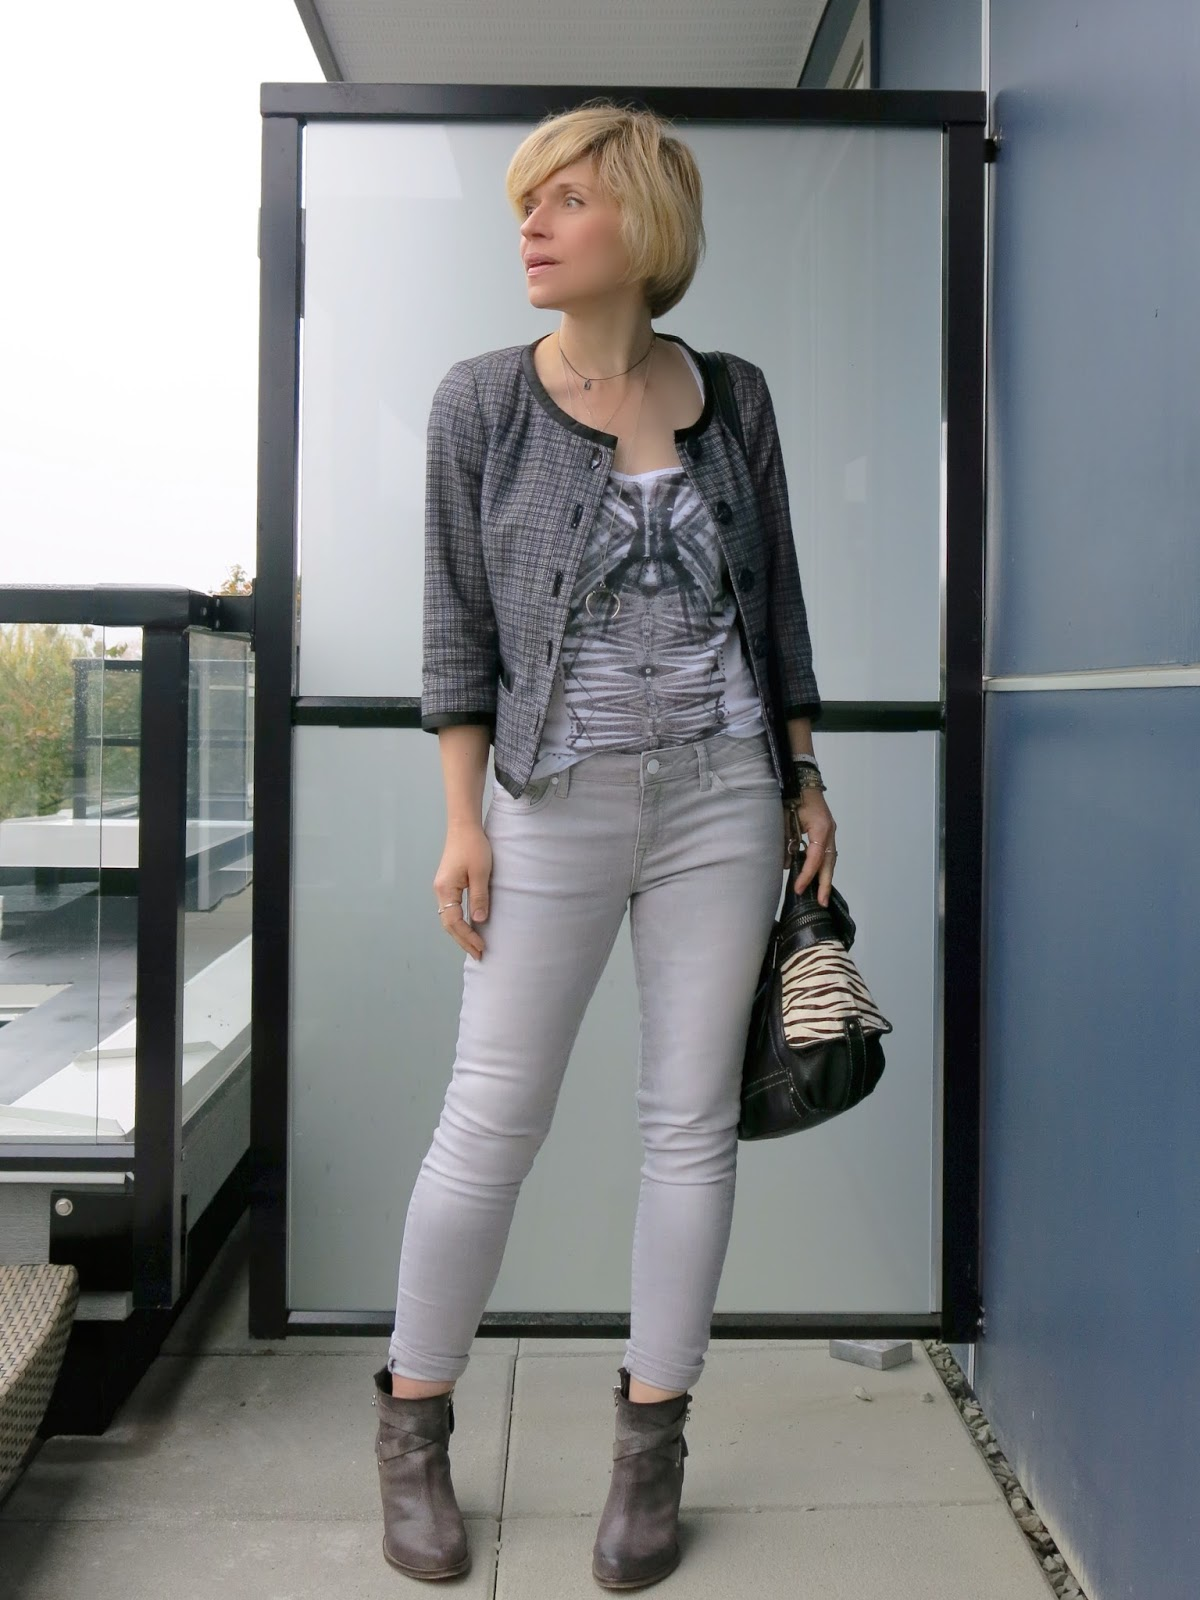 styling grey skinny jeans with a Chanel-style jacket and ankle booties